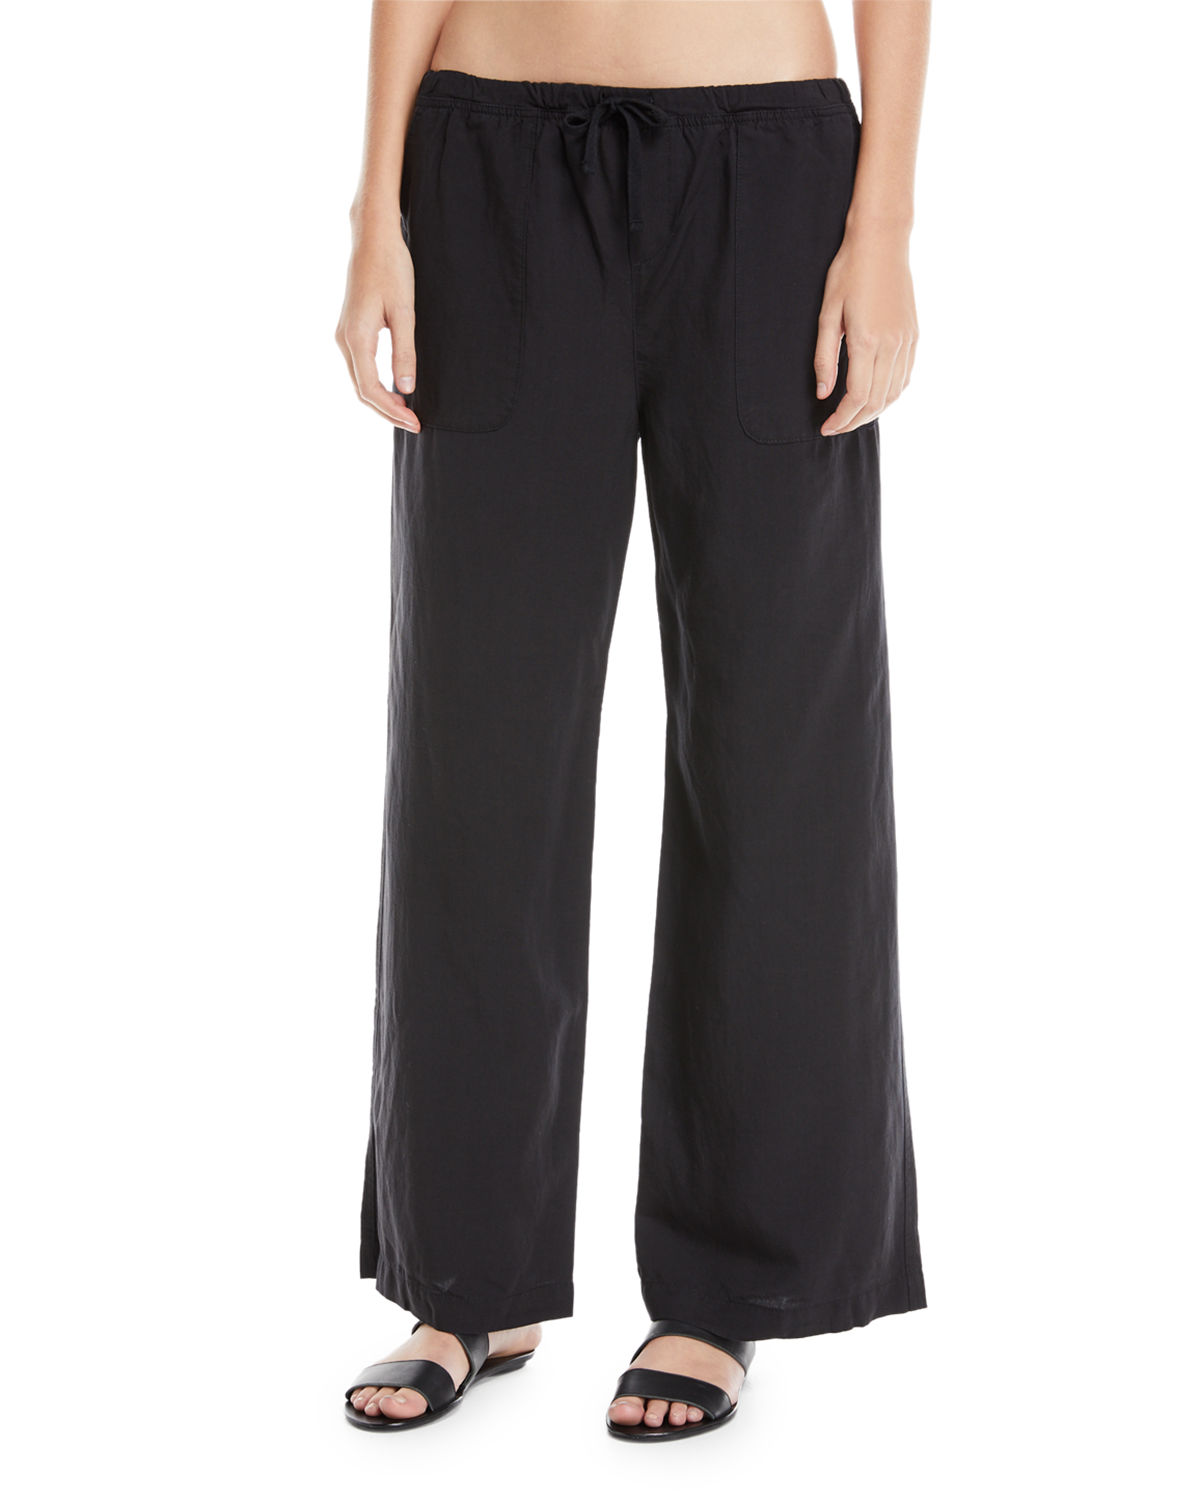 Wide-Leg Drawstring Linen Beach Pants